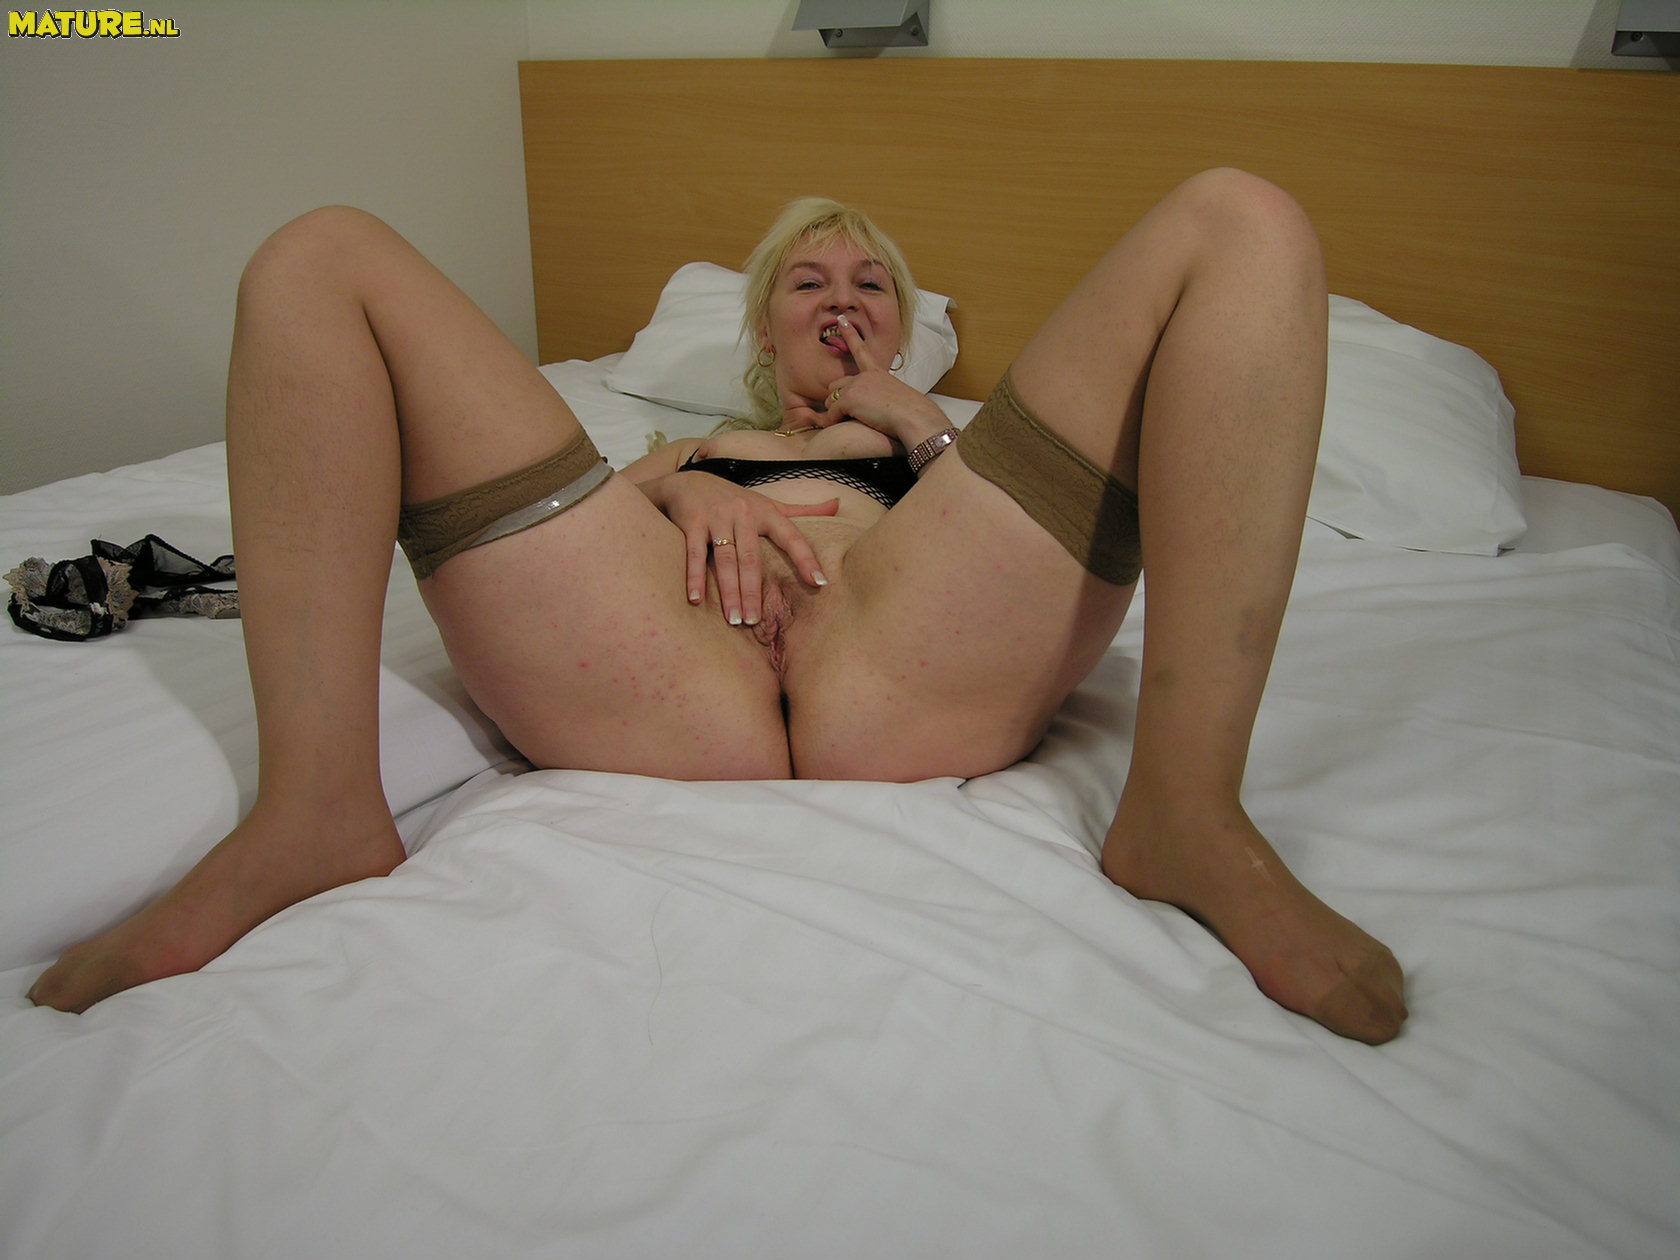 Blond whore gts cunts fucked 1